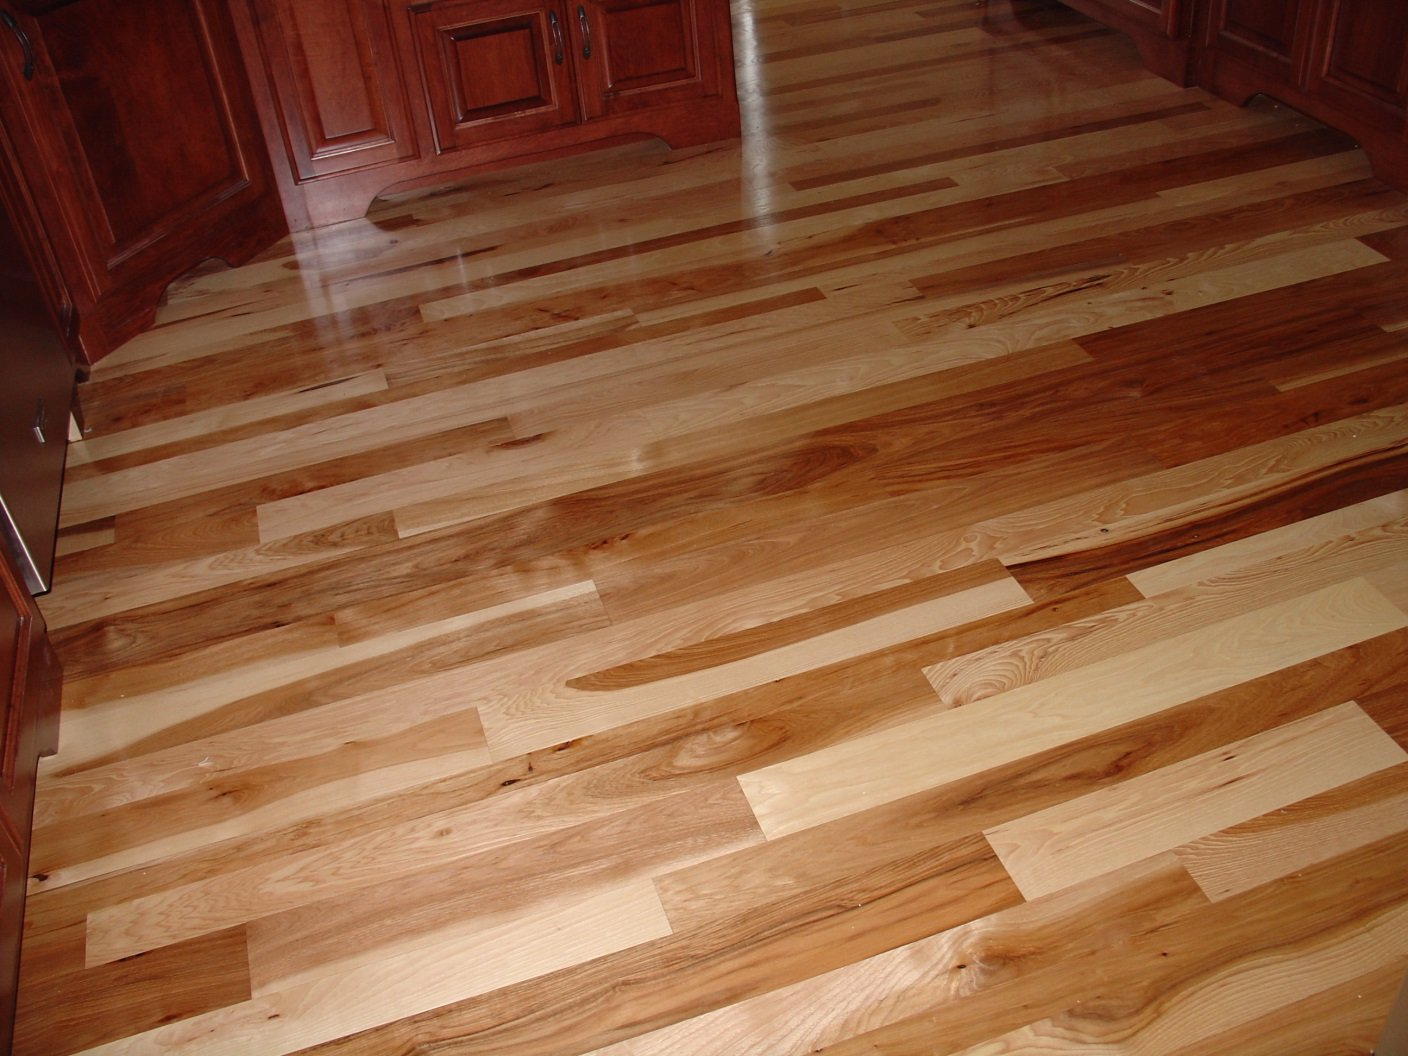 Hickory Natural Hardwood Flooring Wood Floors  U003e Source. Using ...